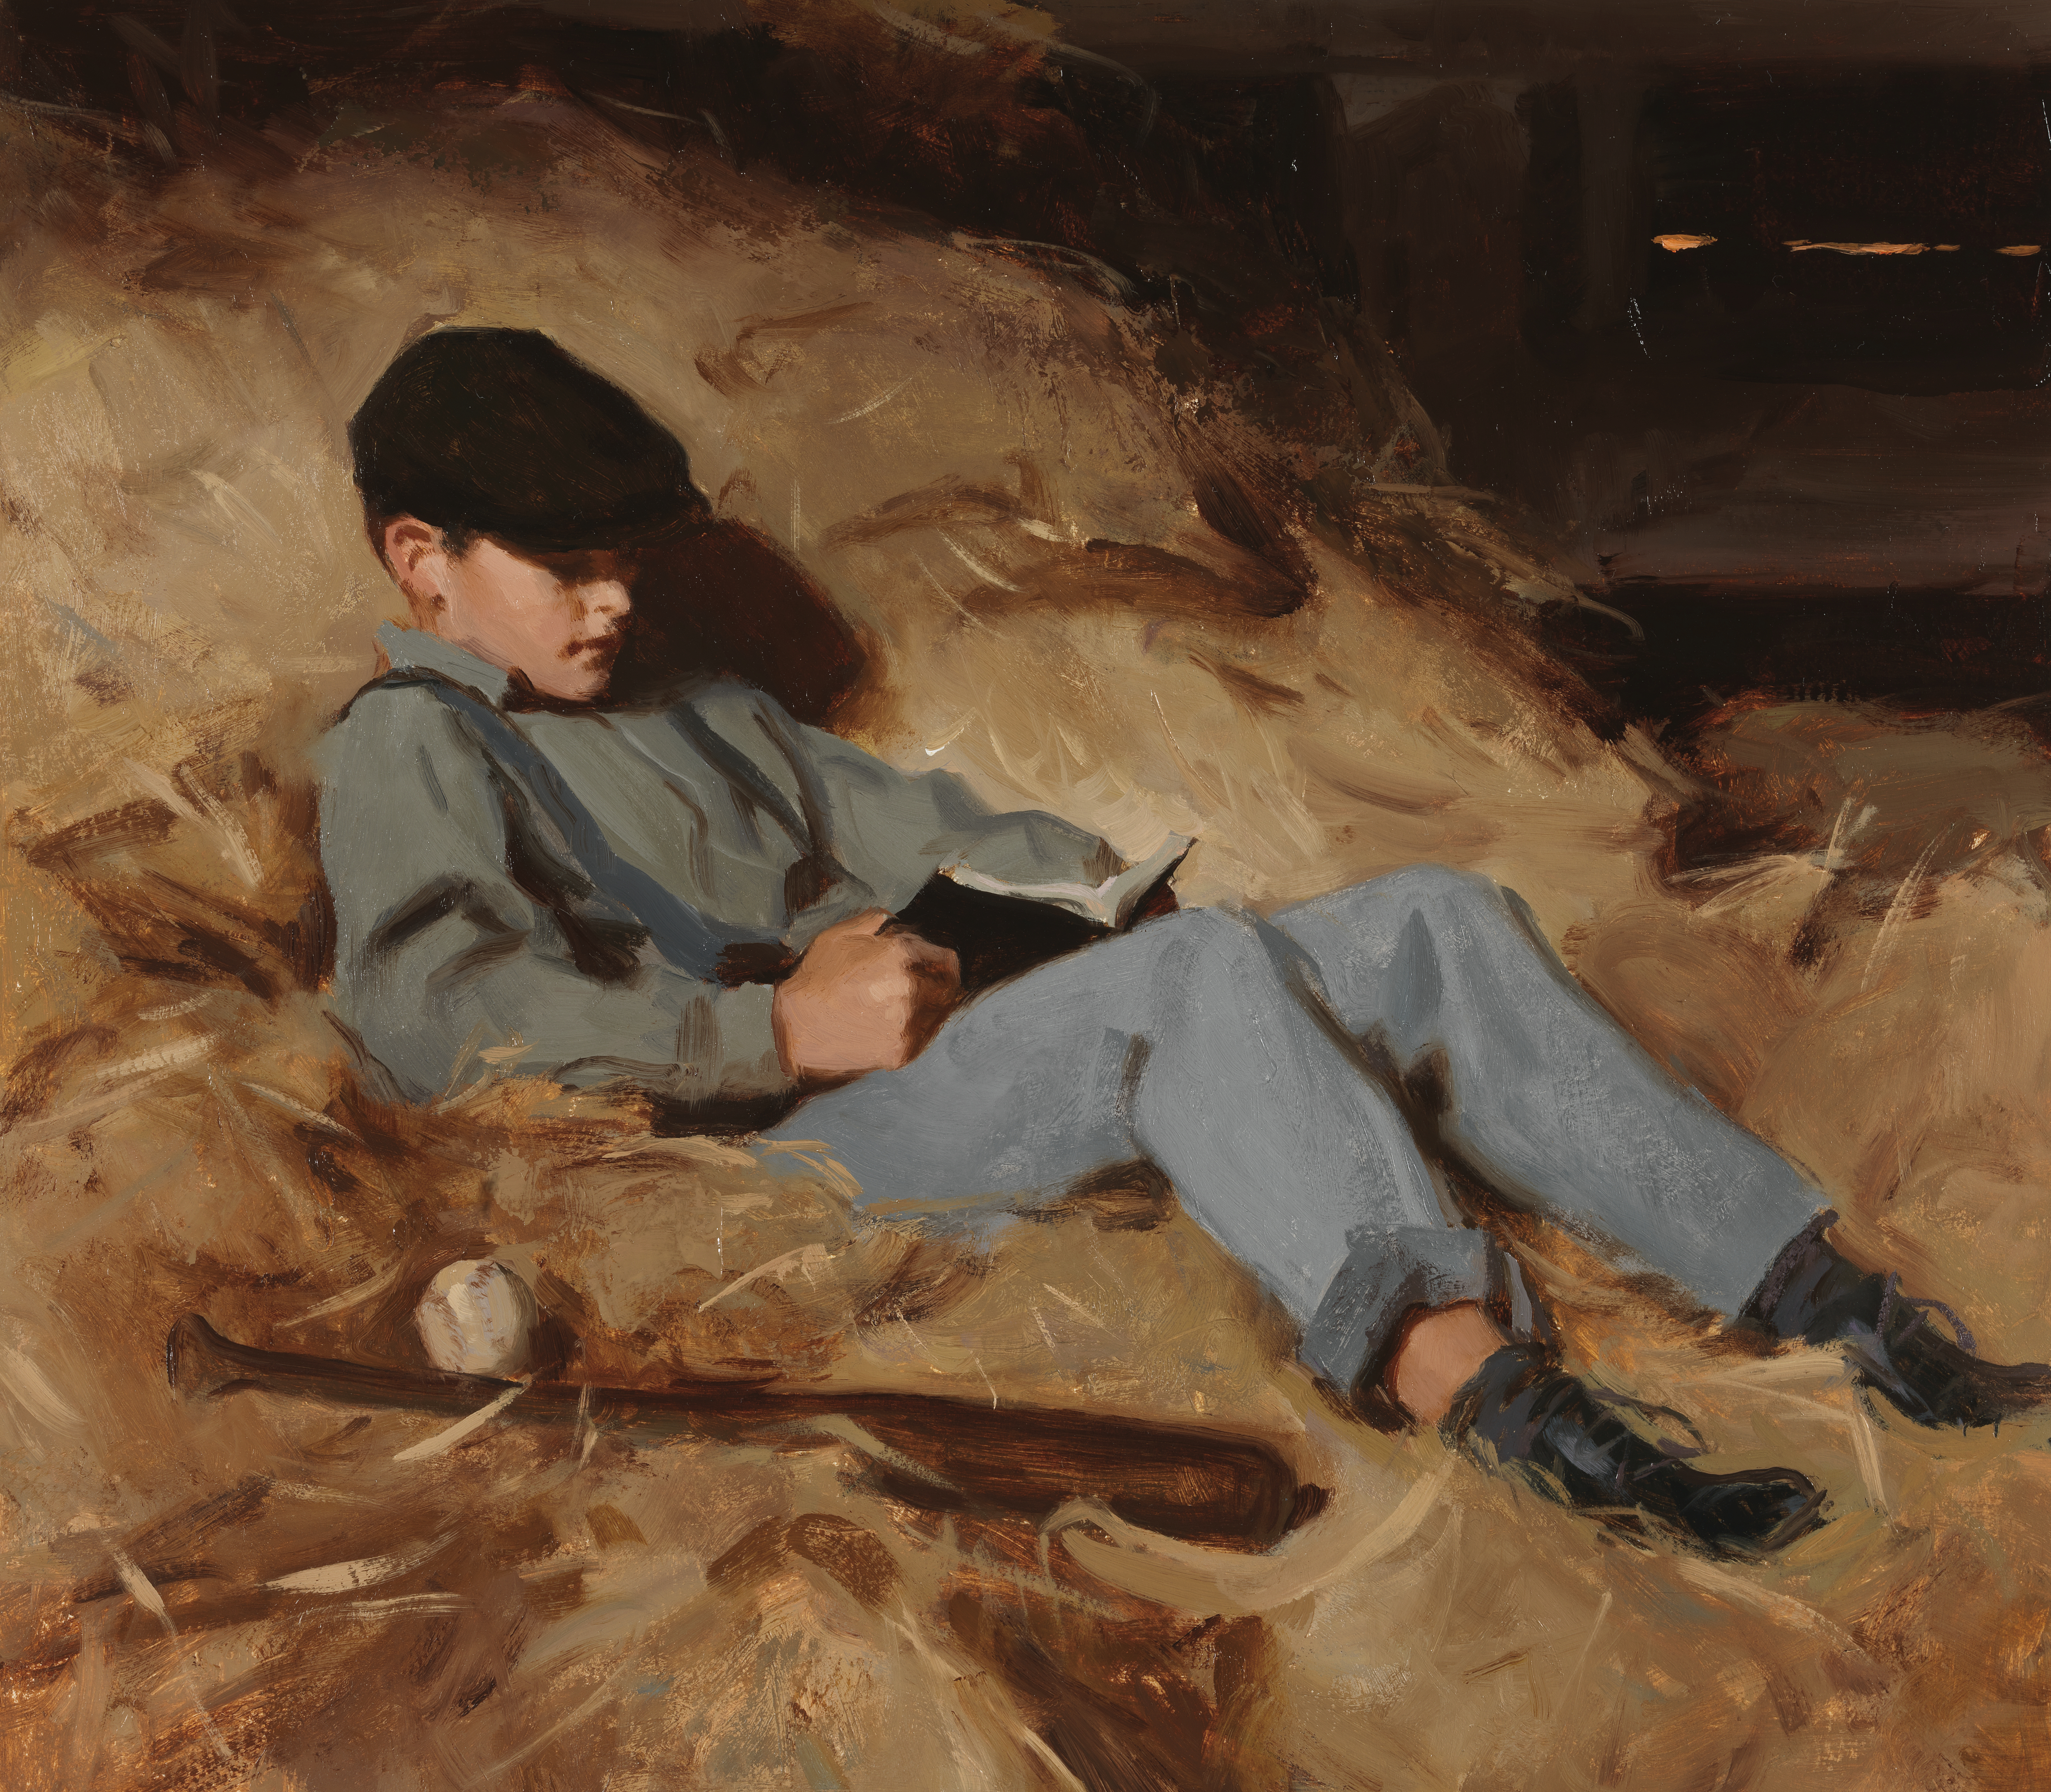 Joseph Fielding Smith as a young boy sitting in a hayloft, reading scriptures. Teachings of Presidents of the Church: Joseph Fielding Smith (2013), 5